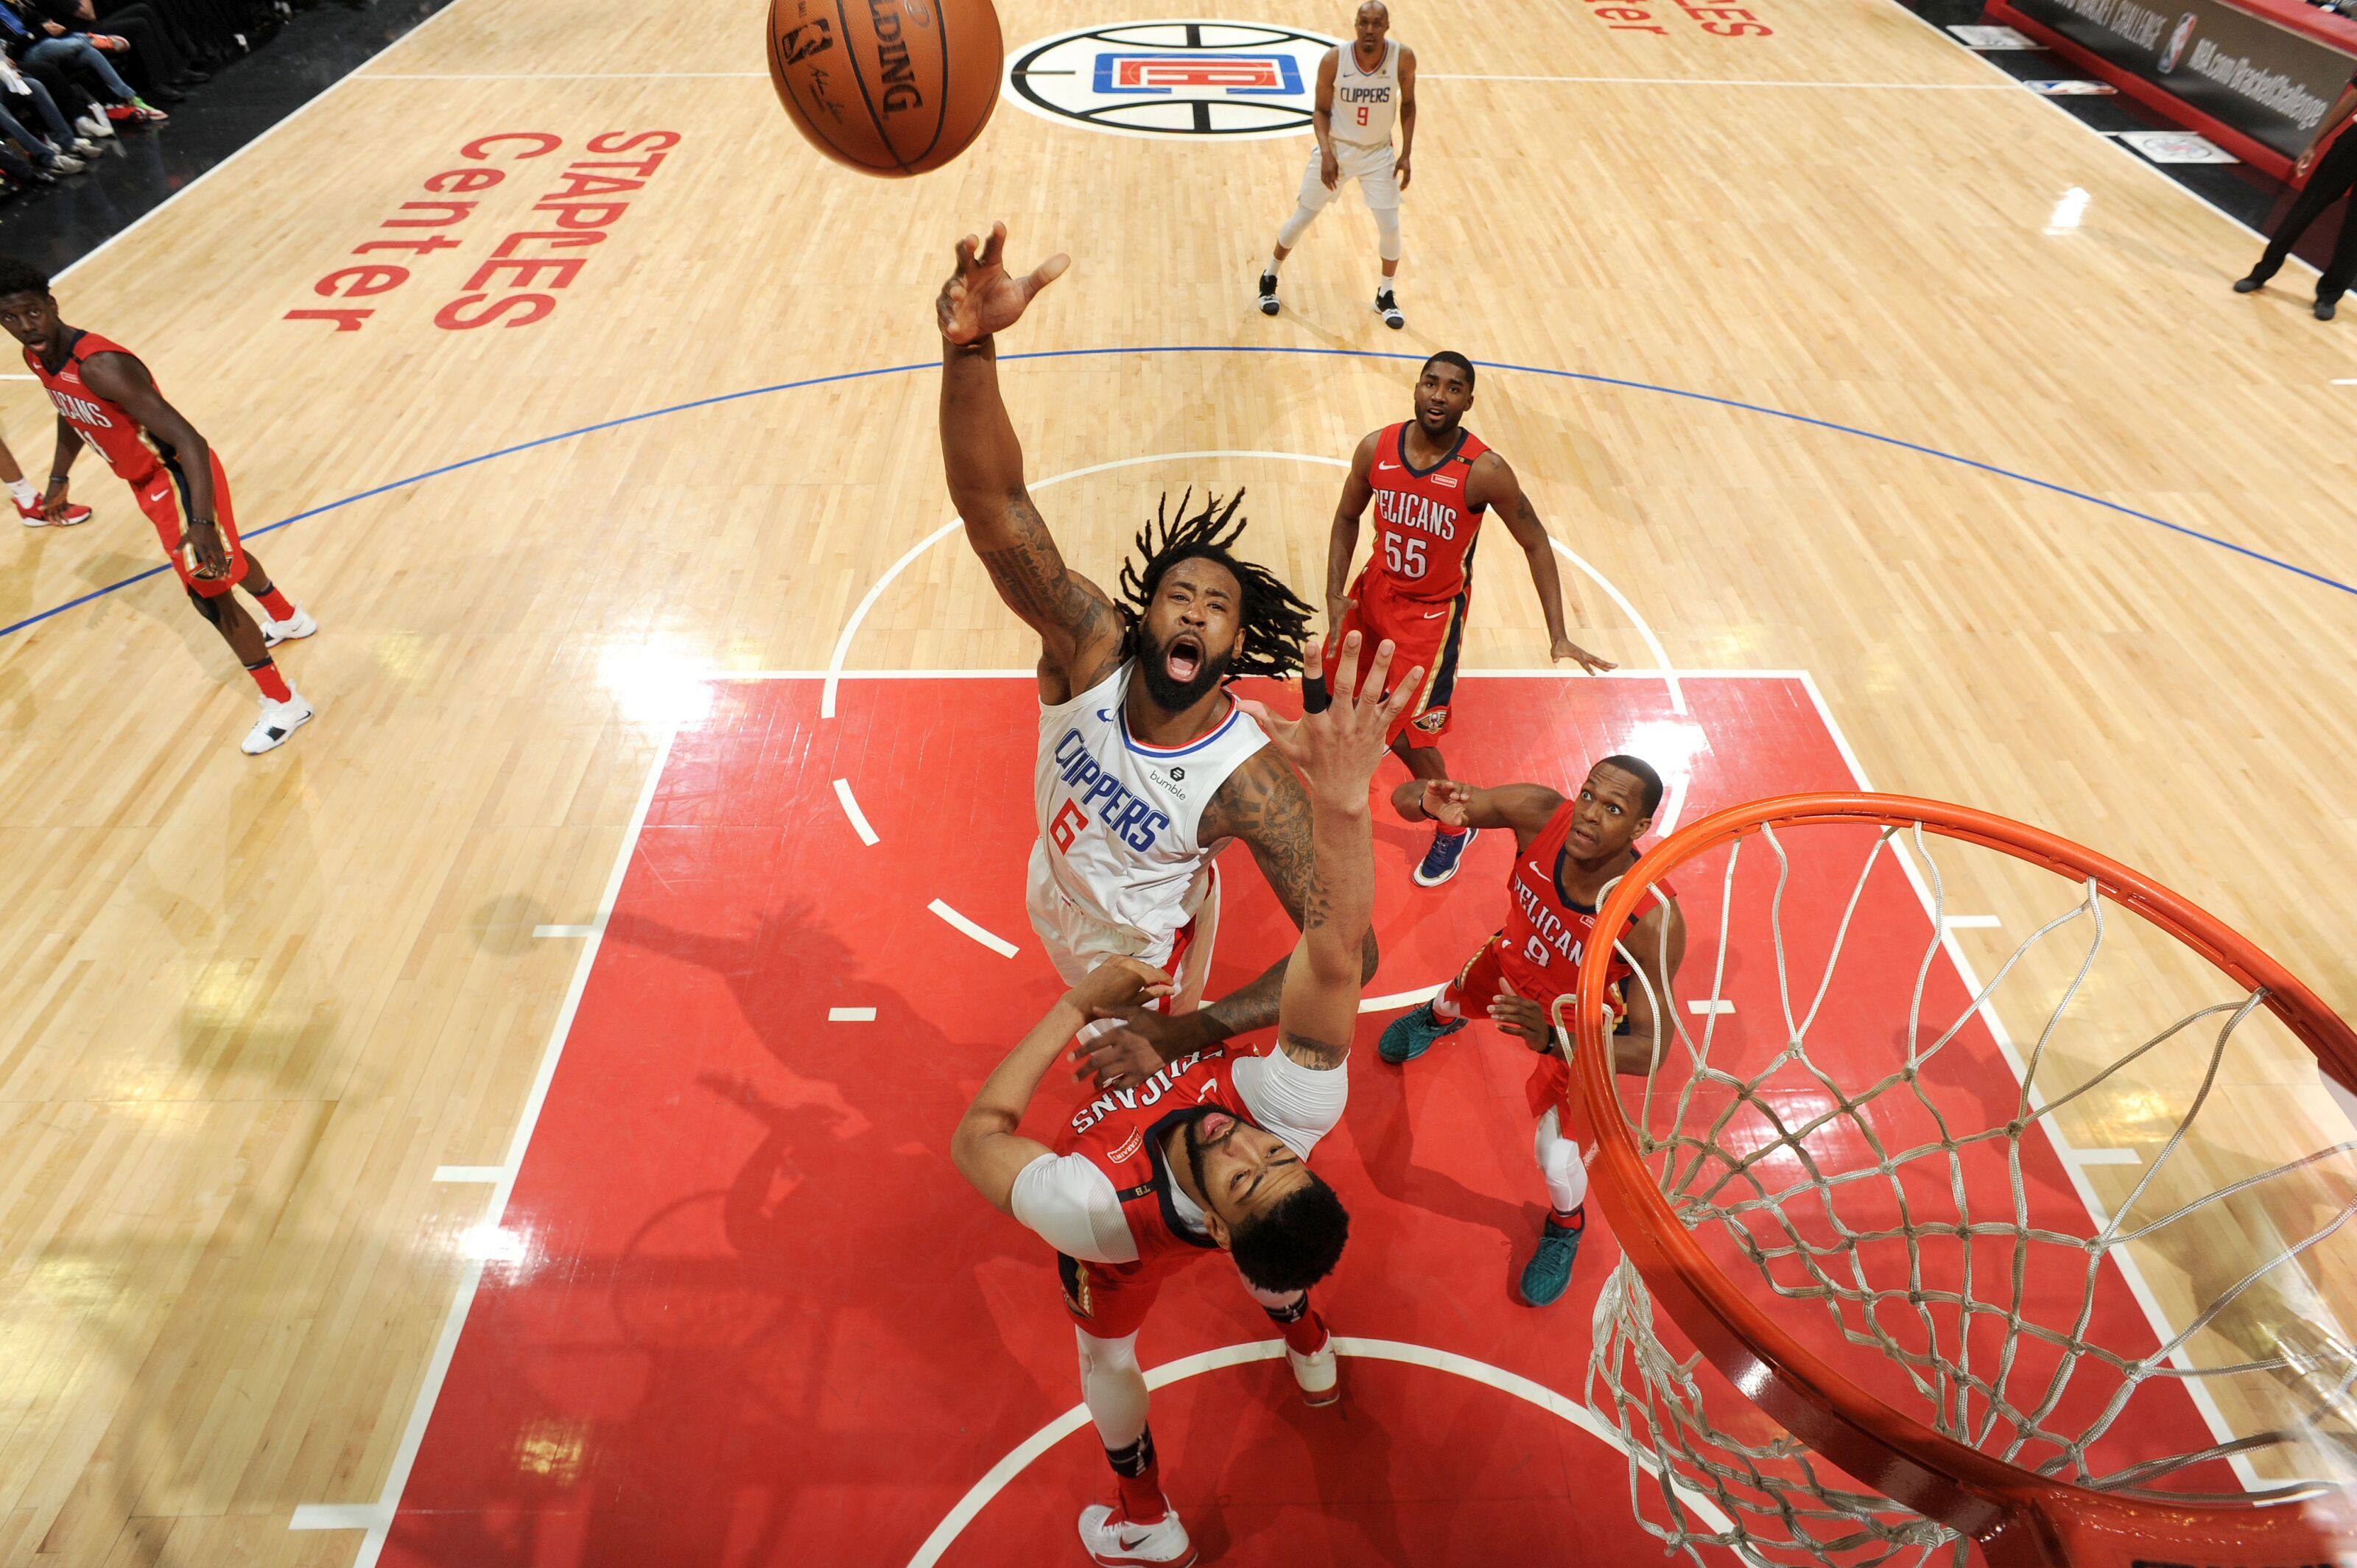 944017104-new-orleans-pelicans-v-la-clippers.jpg